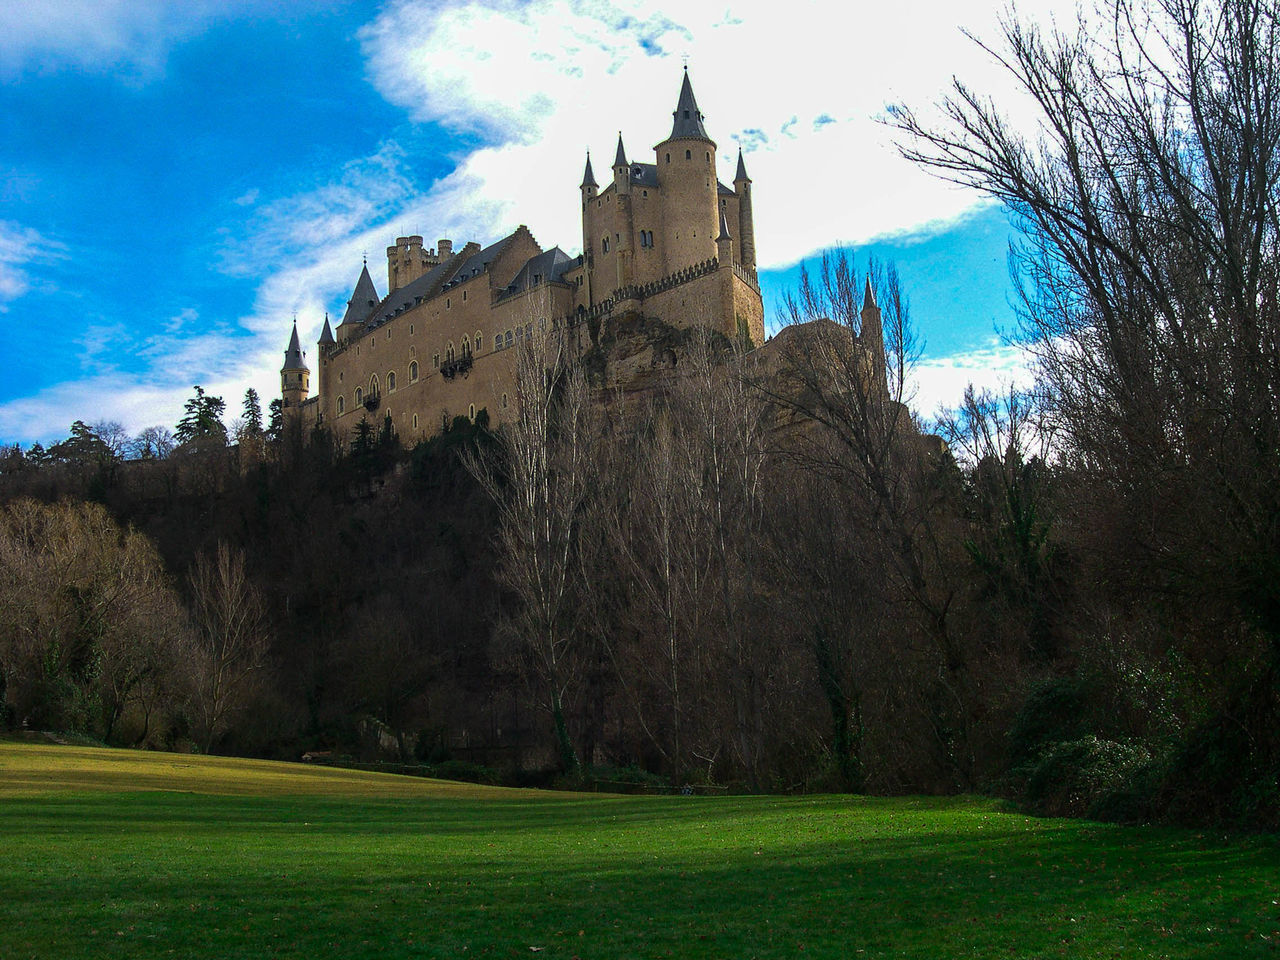 Alcazar Alcázar Segovia Architecture Castilla Castle Medieval Outdoors Segovia SPAIN Tourism Travel Travel Destinations Traveling Winter